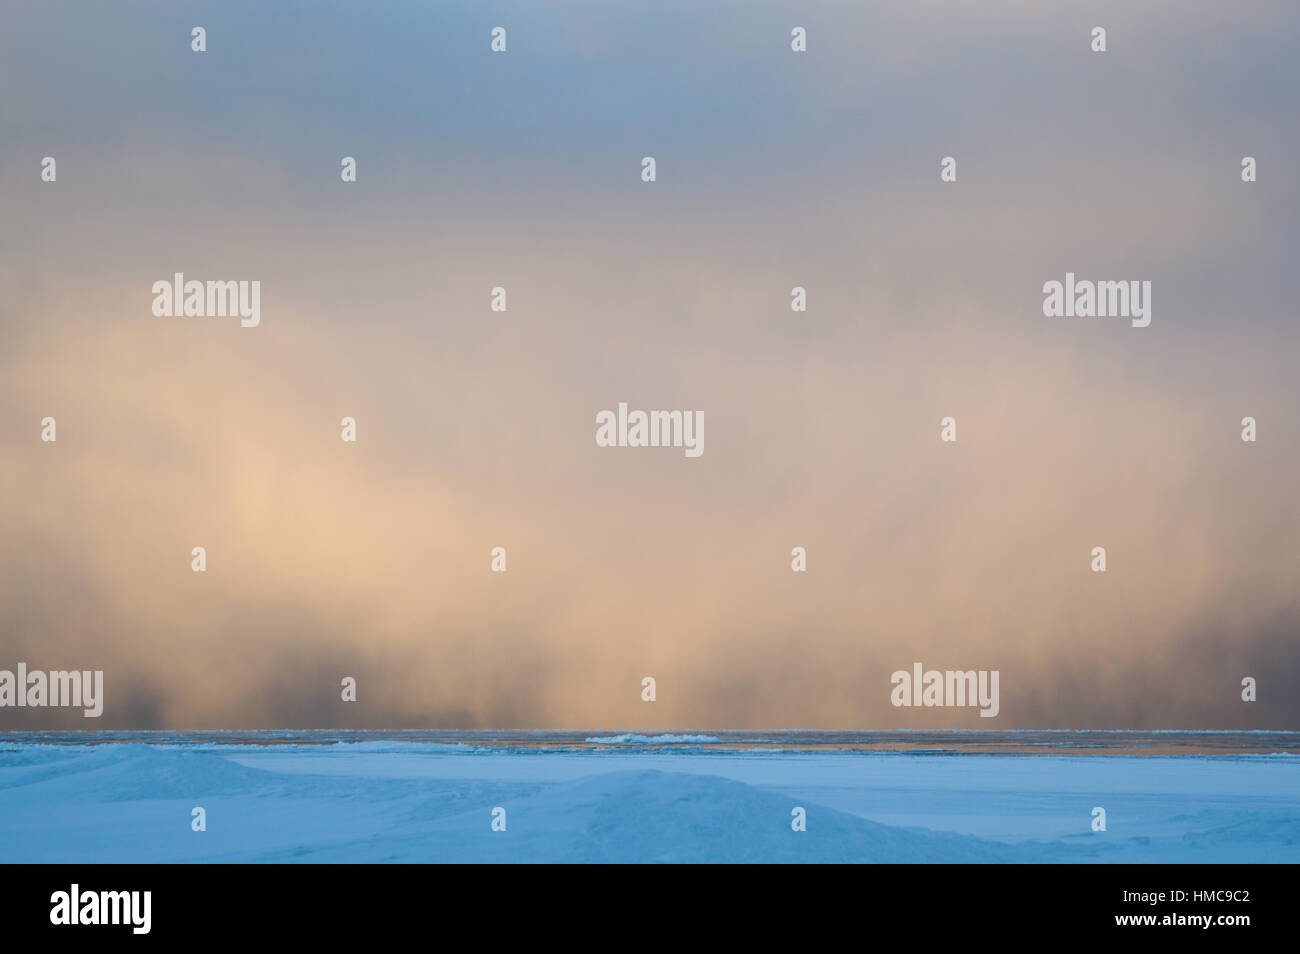 Sidelit snow squall clouds rolling in across the frozen Lake Huron at sunrise.  Ice floats on the still calm water. - Stock Image